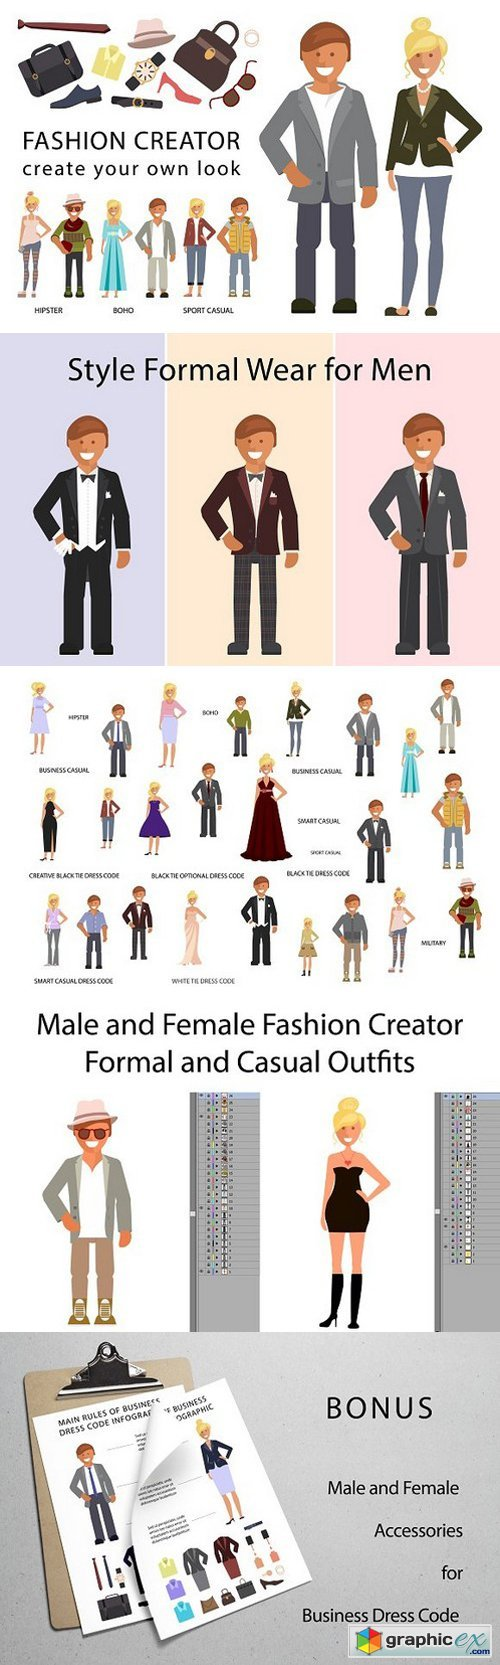 Fashion Look Creator